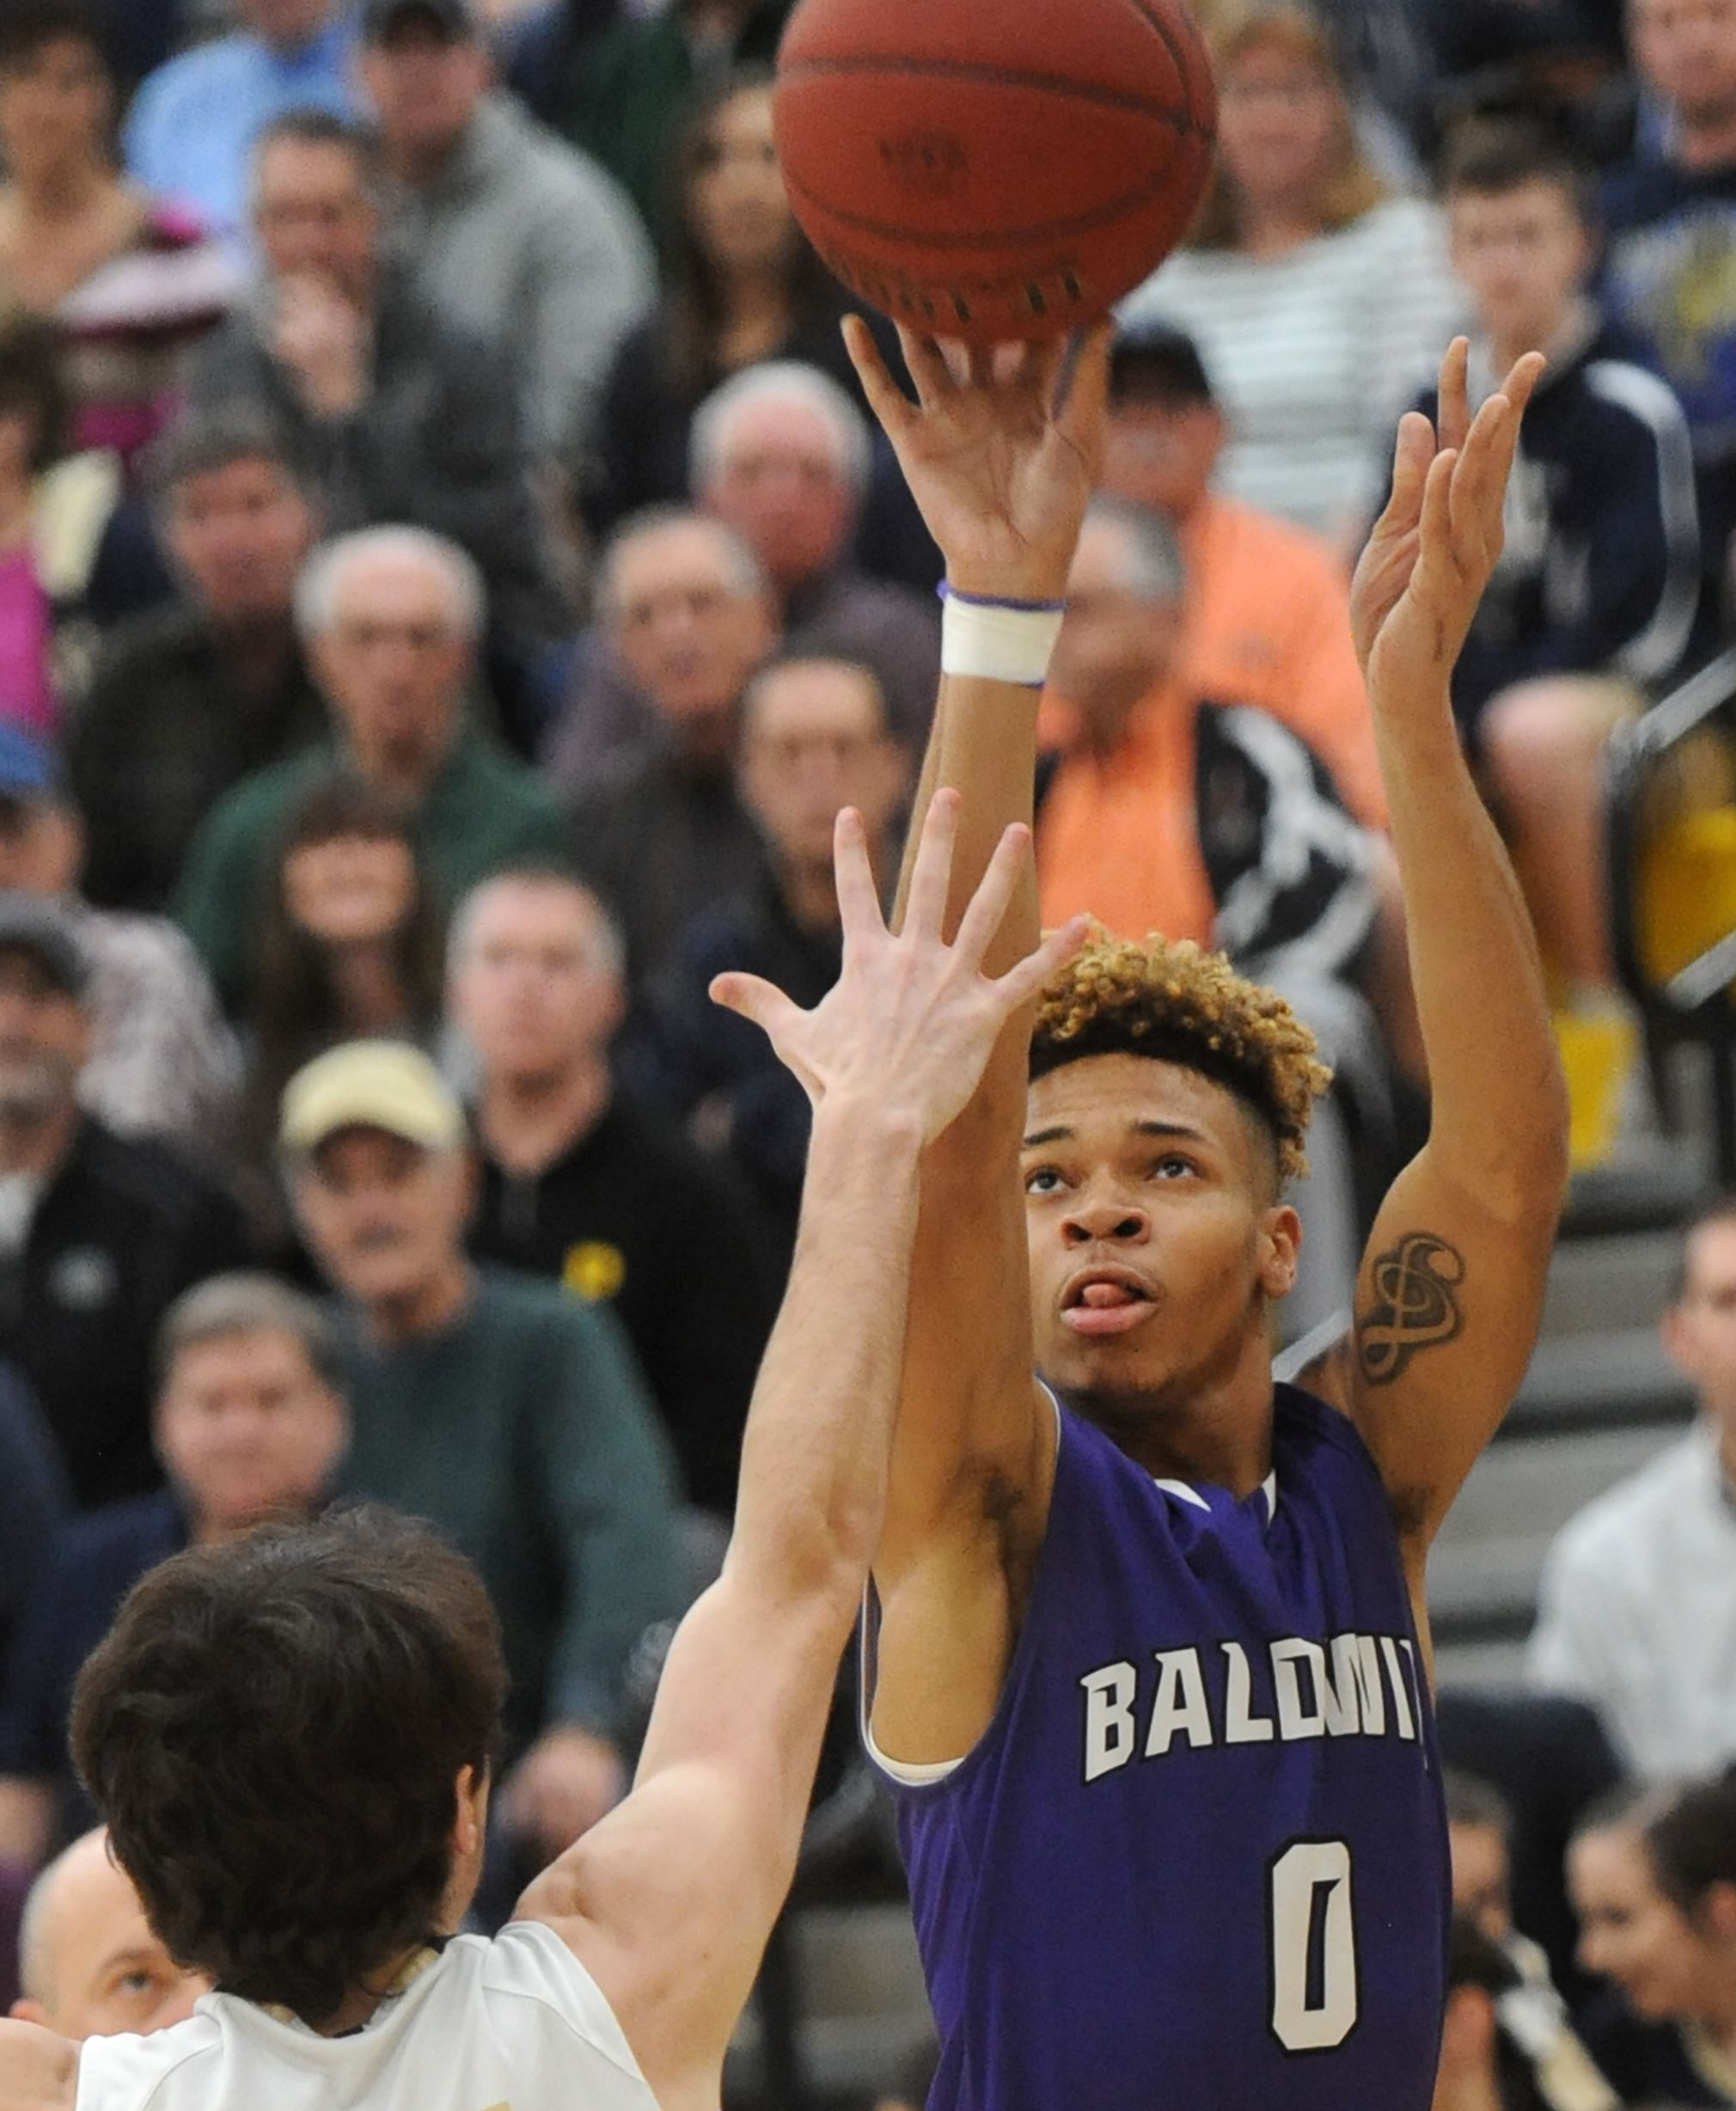 School Shooting In Pittsburgh Today: Butler Holds Off Baldwin For 71-62 First-round Win In